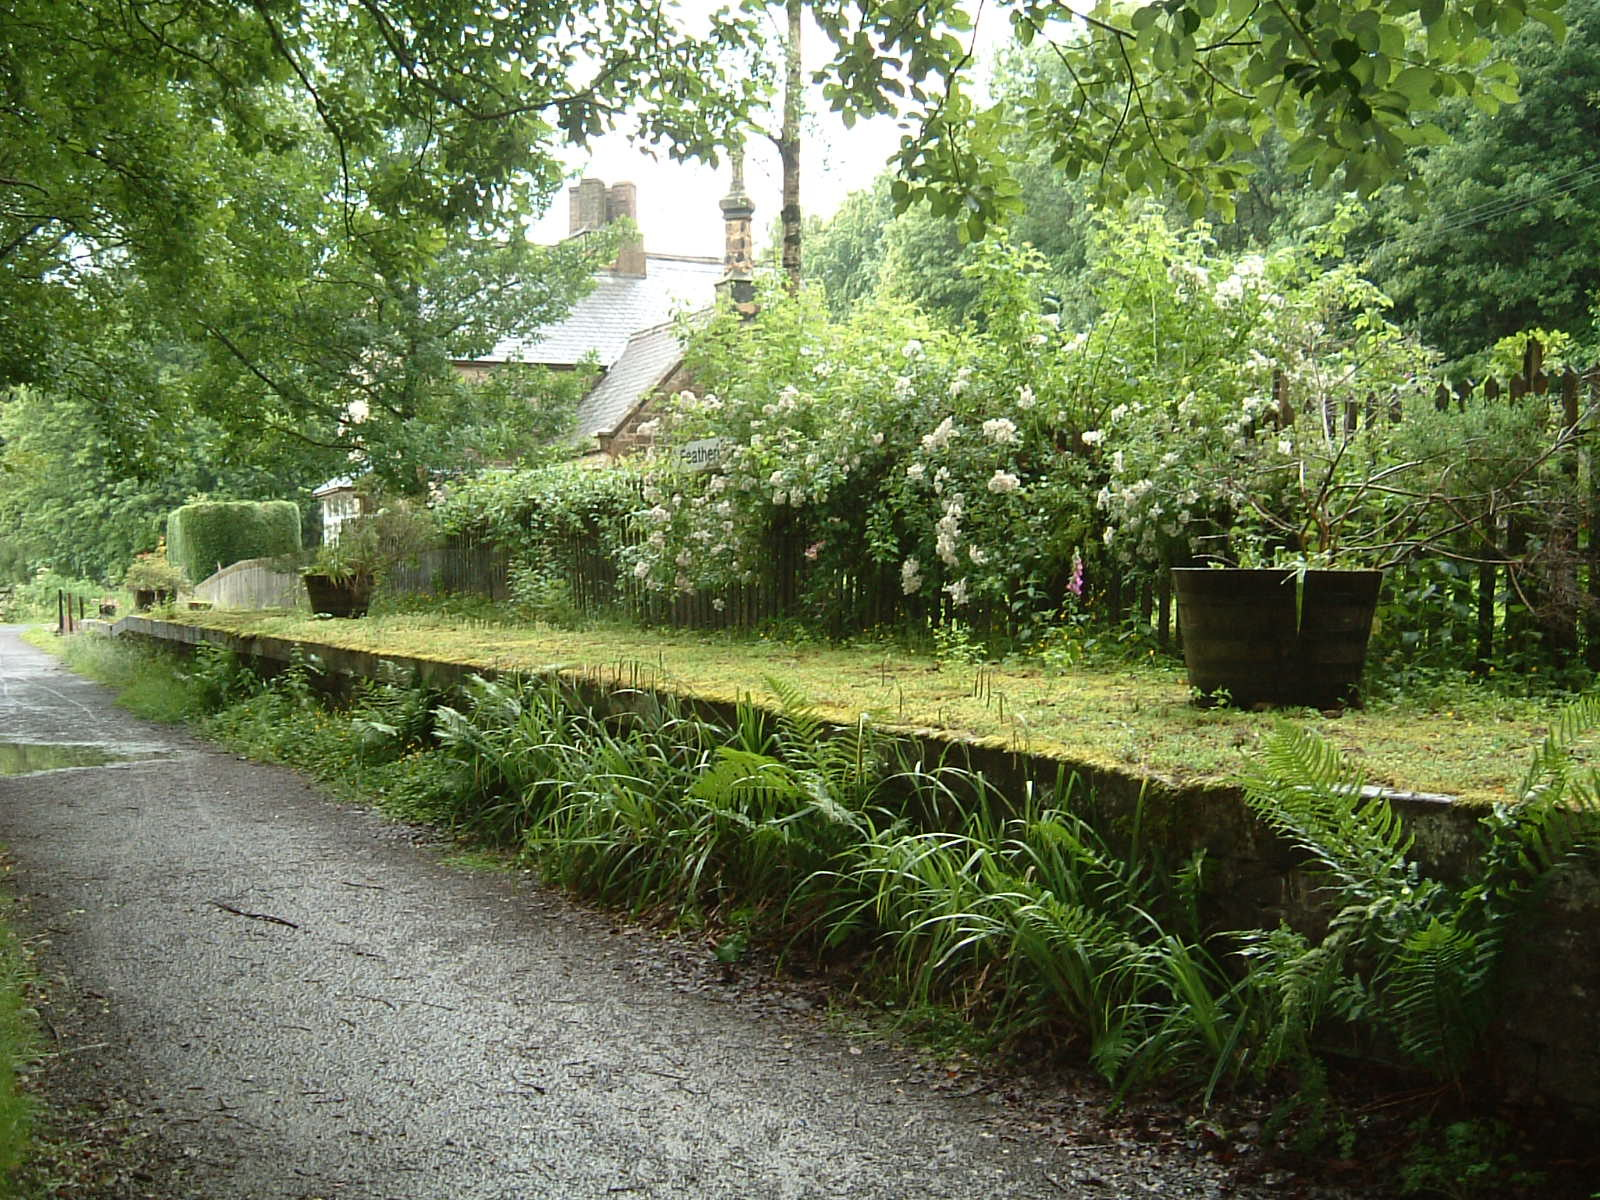 The old and rather overgrown train platform at Featherstone Rowfoot